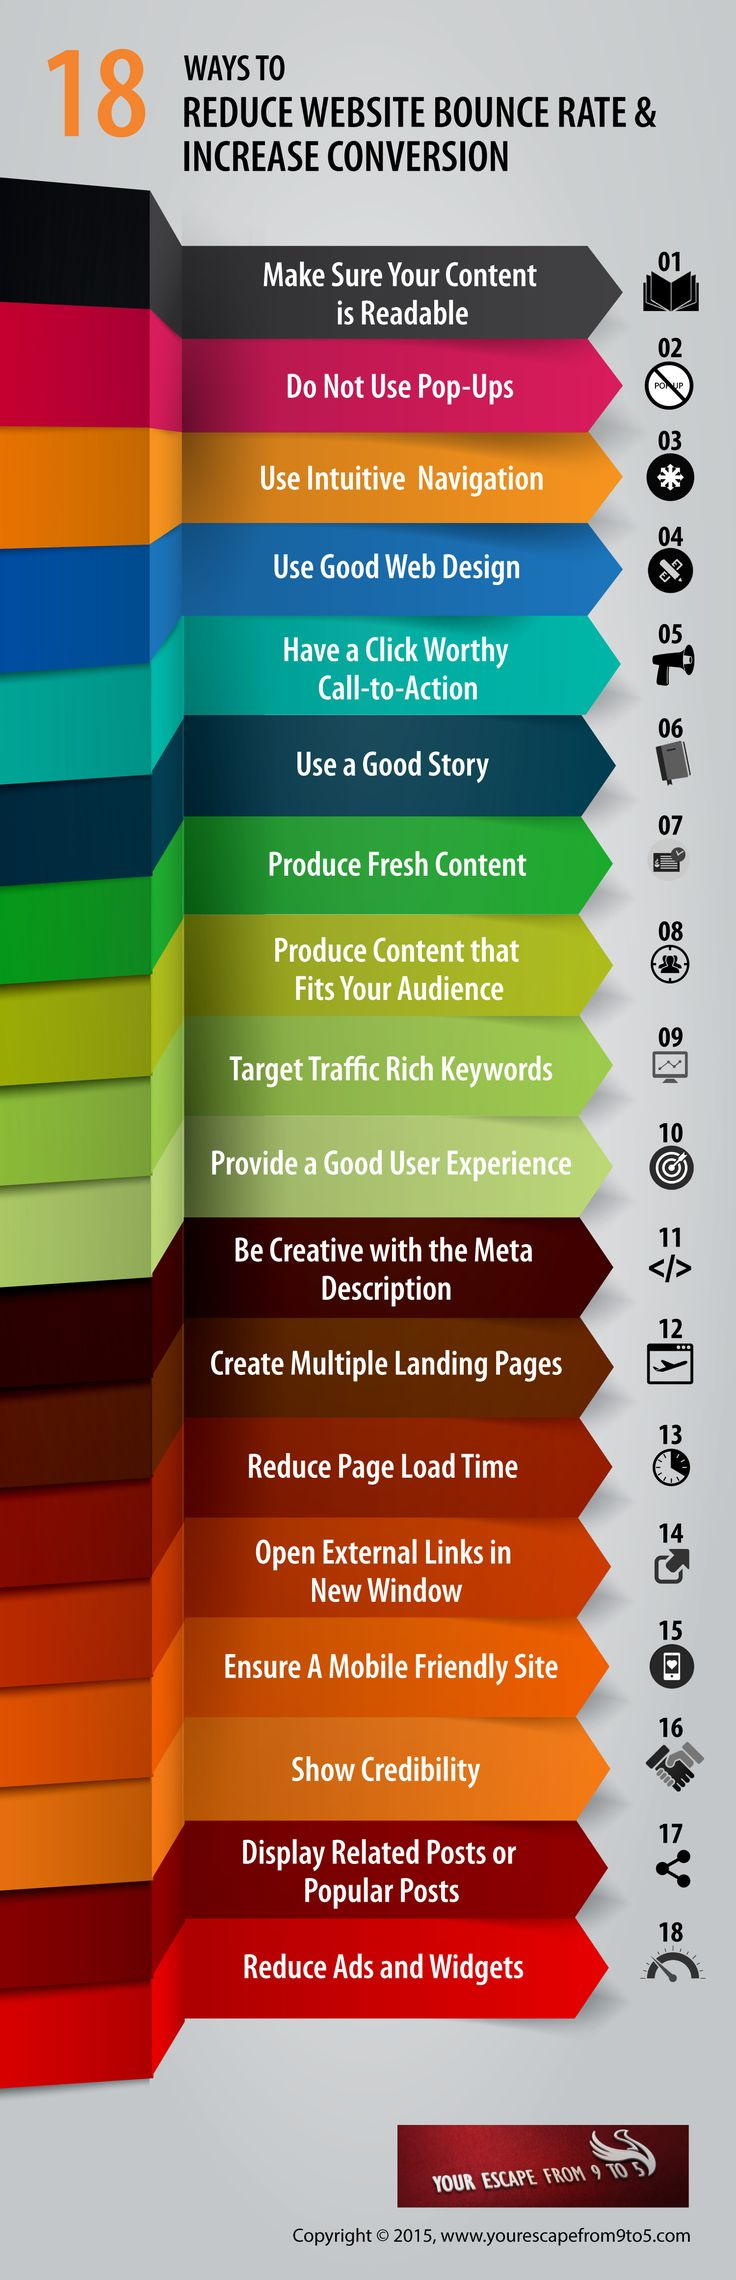 18 ways to reduce website bounce rate and increase conversion #Infographic